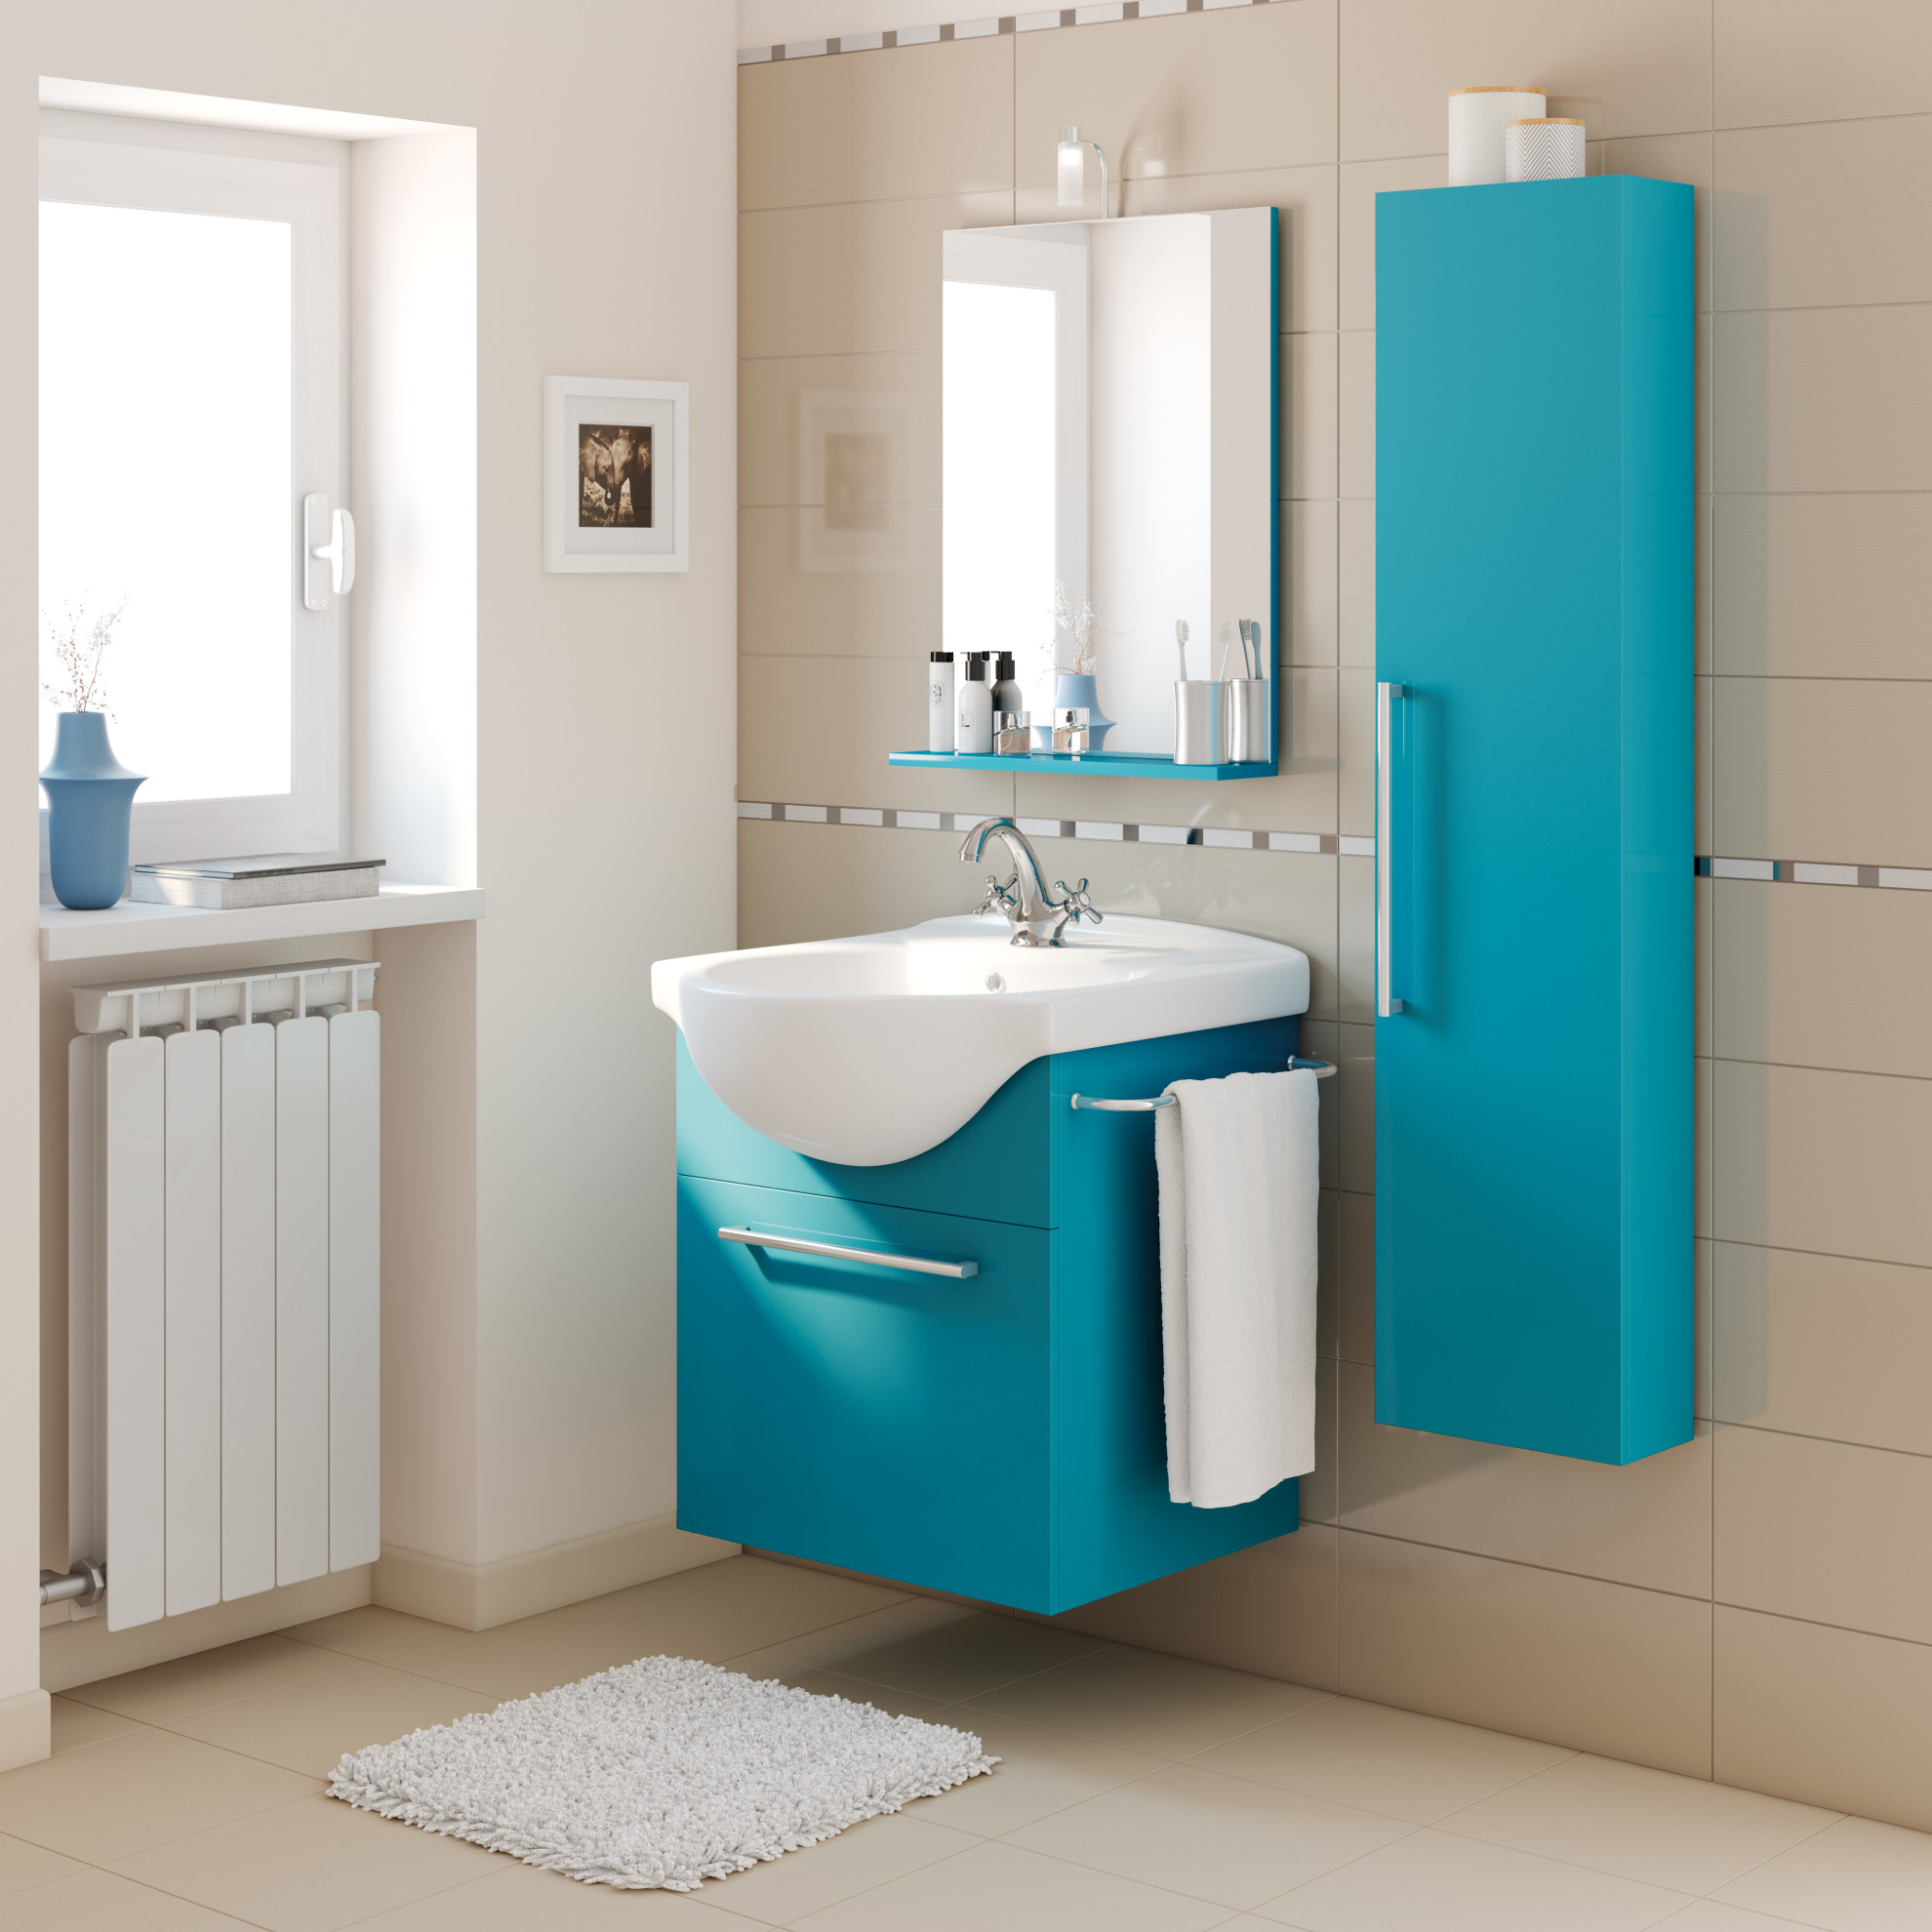 leroy merlin prodotti bagno. top caos with leroy merlin prodotti ... - Leroy Merlin Arredo Bagno Classico